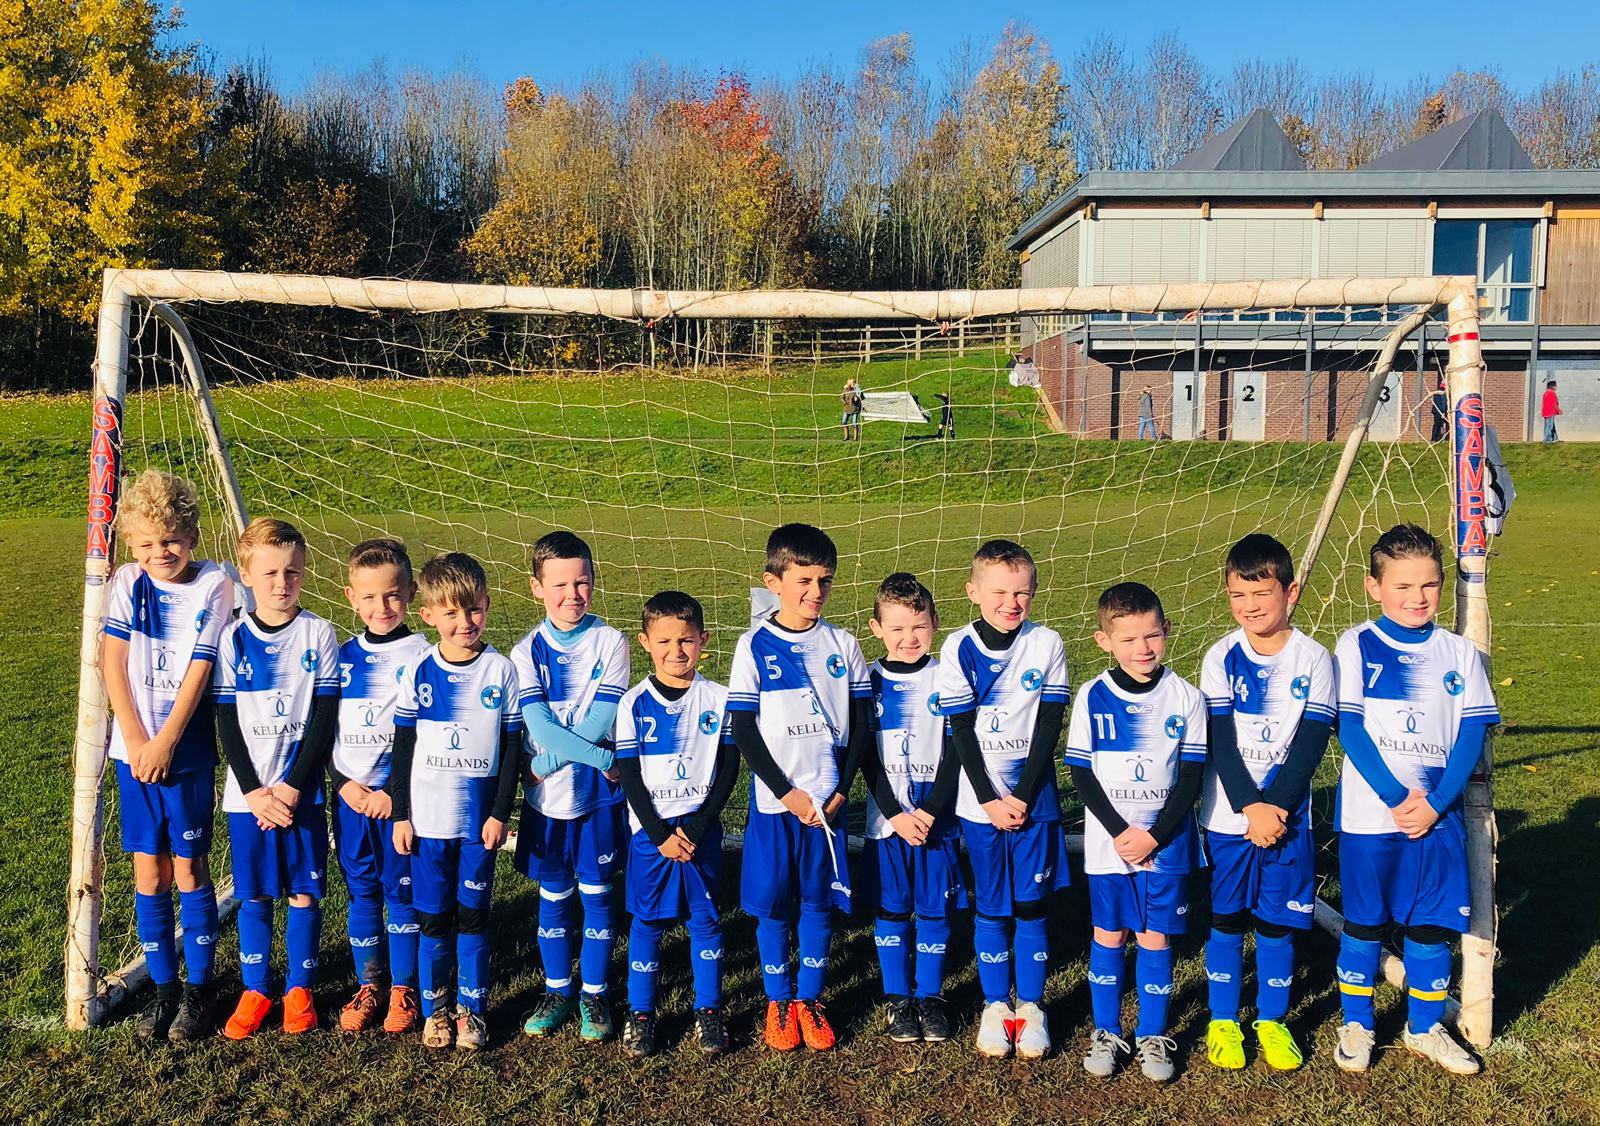 Kellands is delighted to sponsor Bristol Rovers Junior Supporters Club under 7s